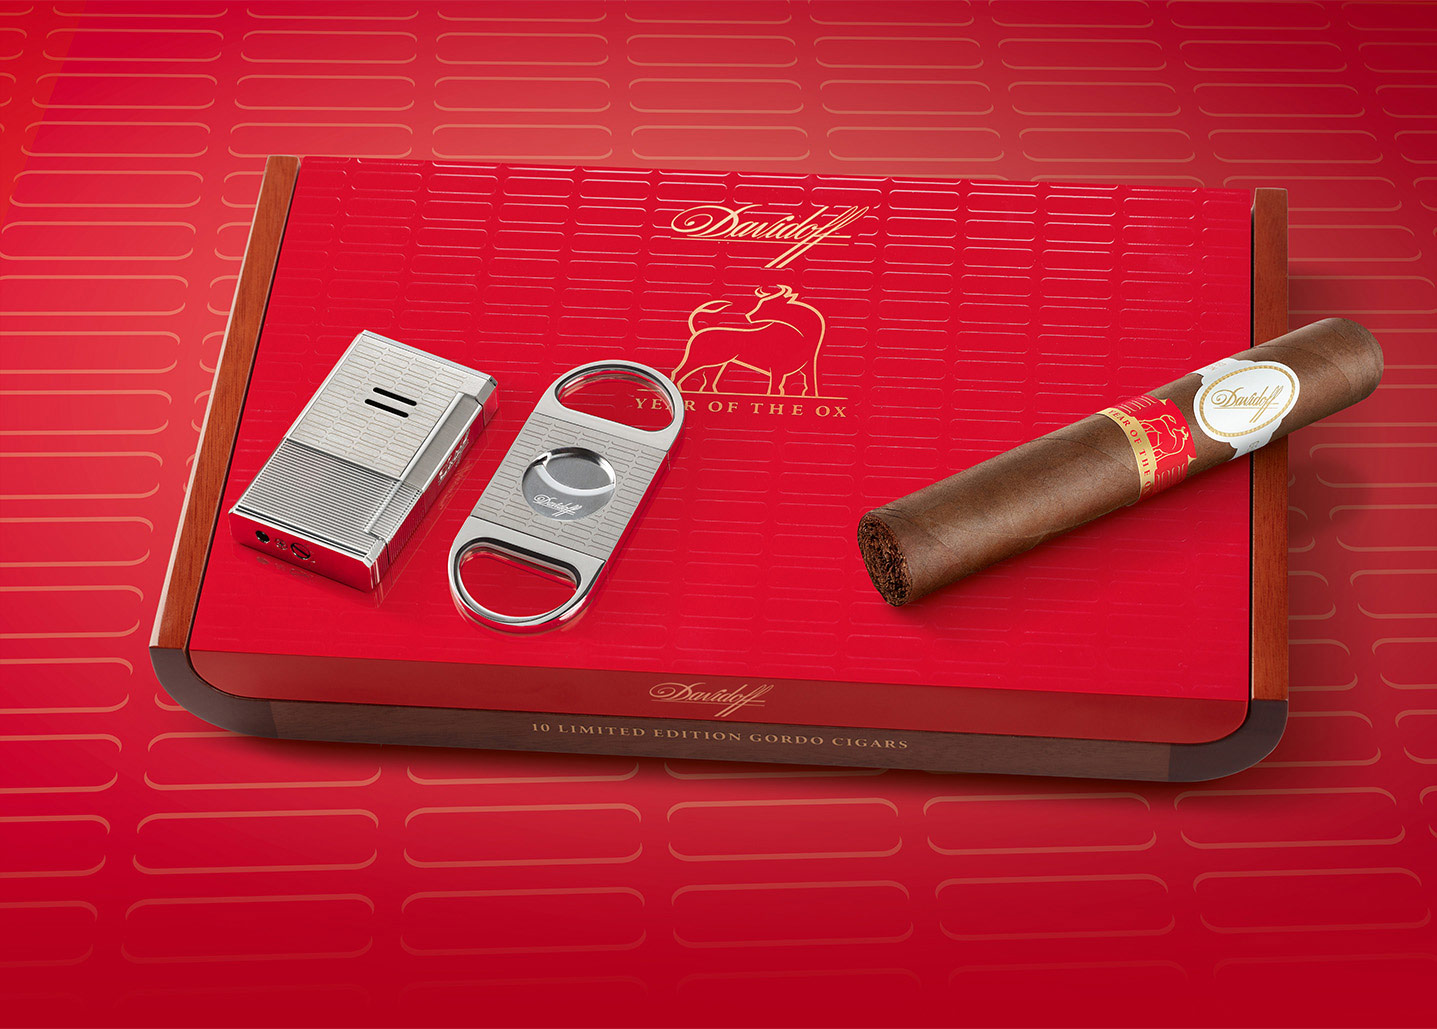 Davidoff Year of the Ox lighter, cutter and cigar 2021